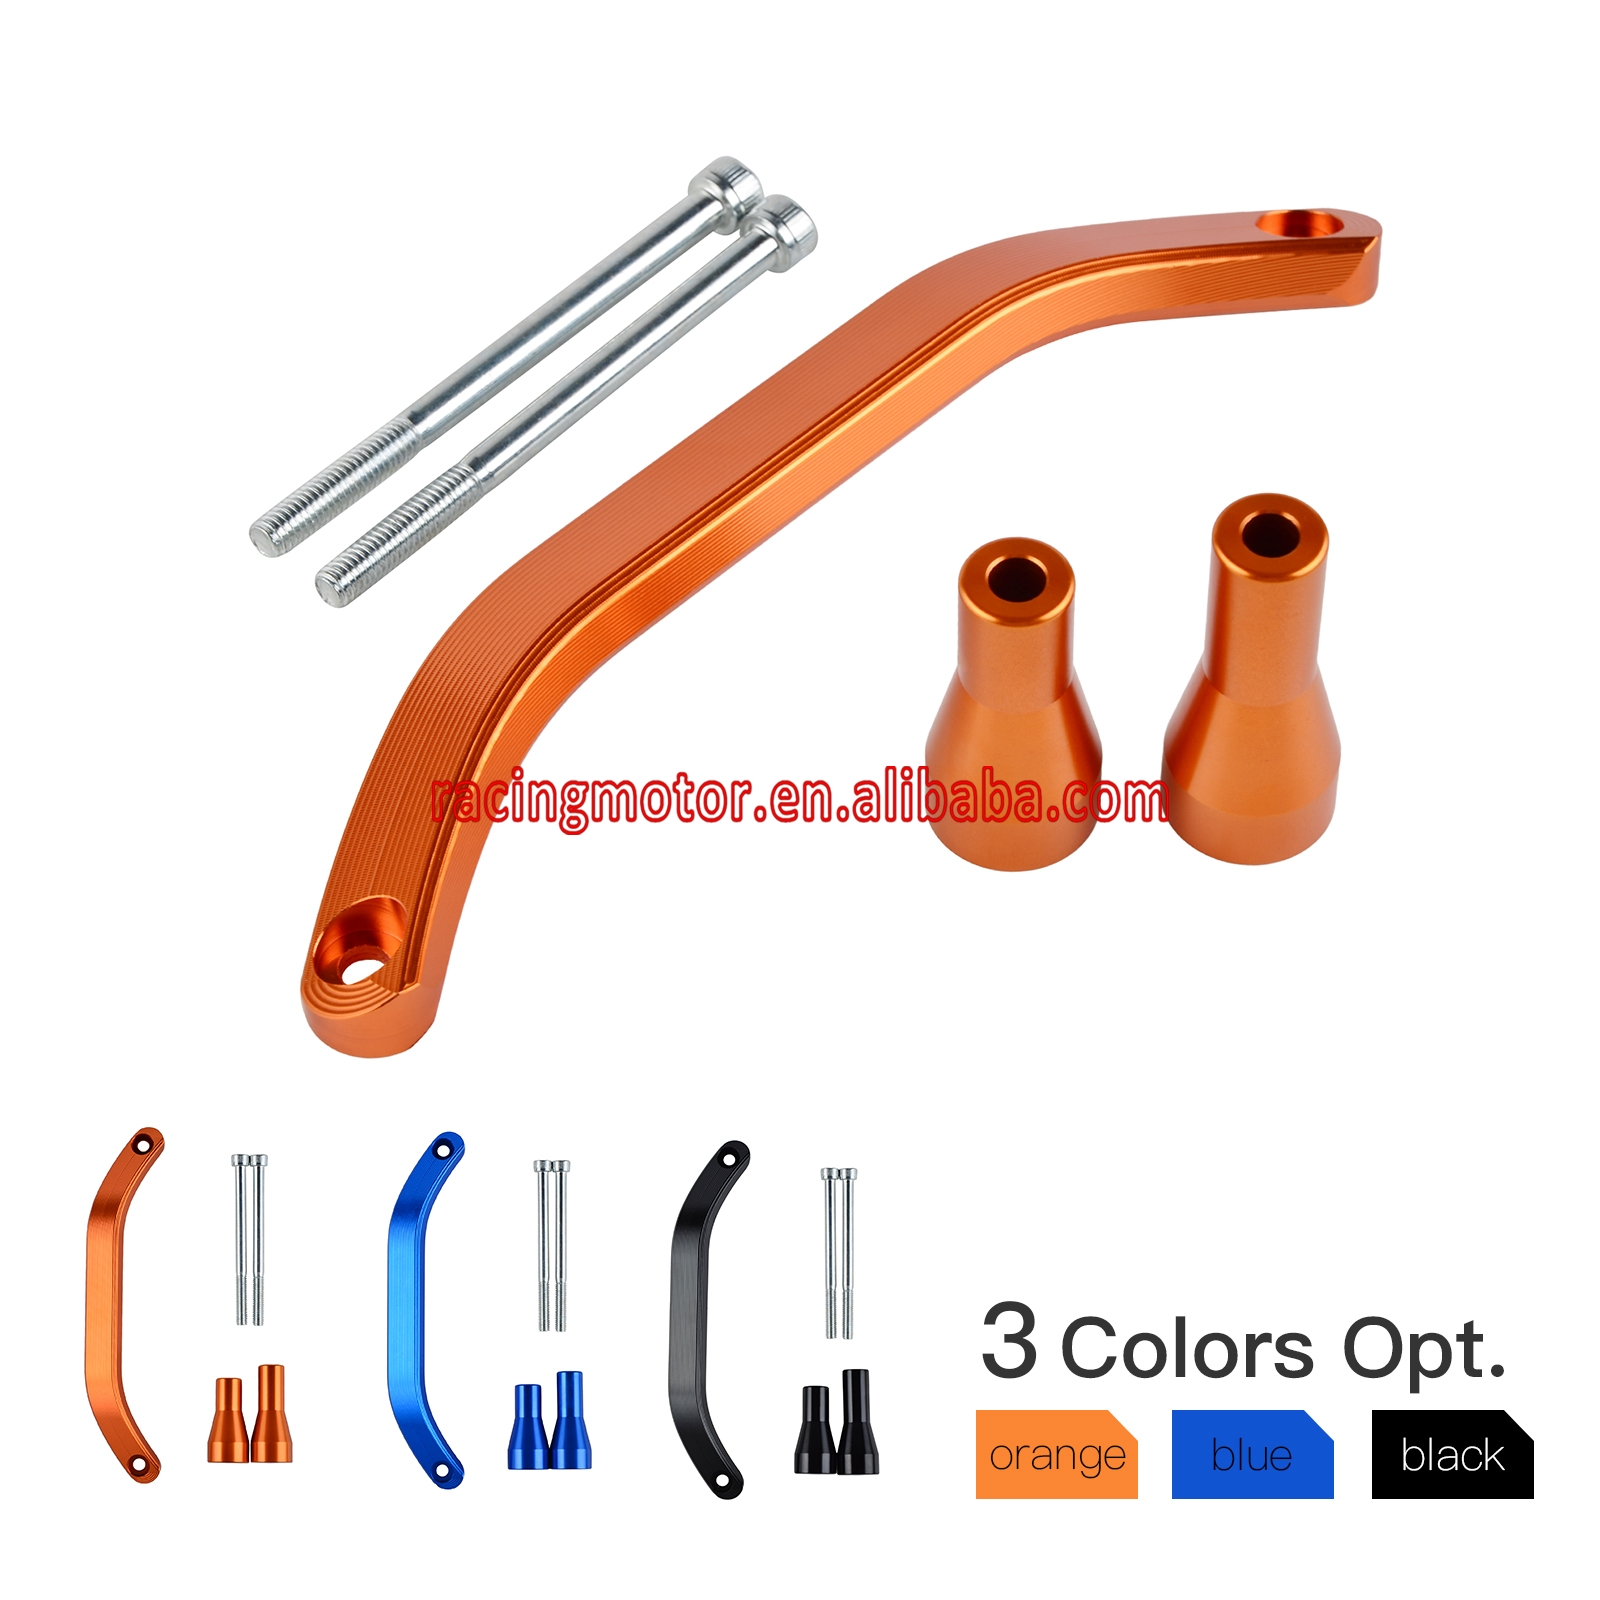 CNC Rear Lift Grab Handle with Bolt Kits for KTM 85 125 150 200 250 300 350 450 500 SX SX-F XC XCF XCW EXC EXC-F XCF-W Freeride carb carburetor 36mm pwk fit ktm 2008 2015 250 300 xc xcw sx 2 strokes keihin